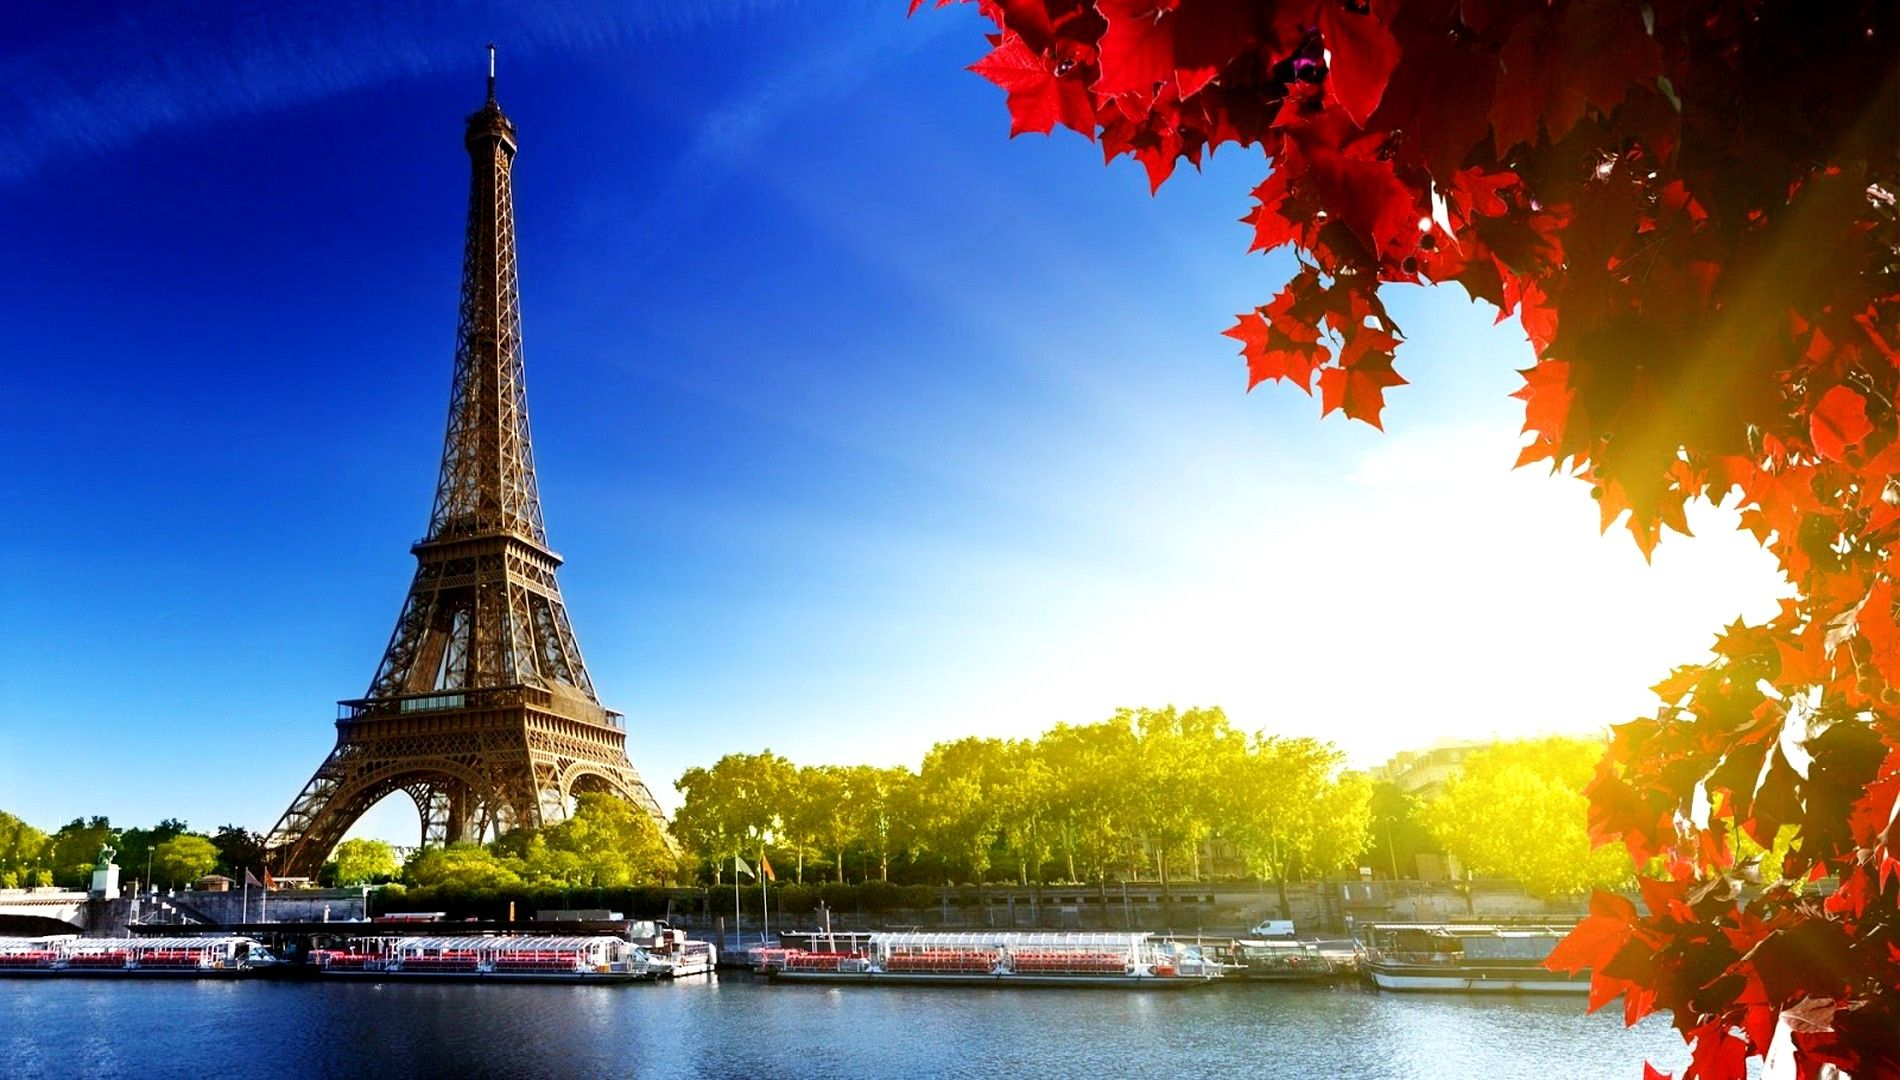 Paris Wallpaper HD Widescreen Find Best Latest For Your PC Desktop Background And Mobile Phones